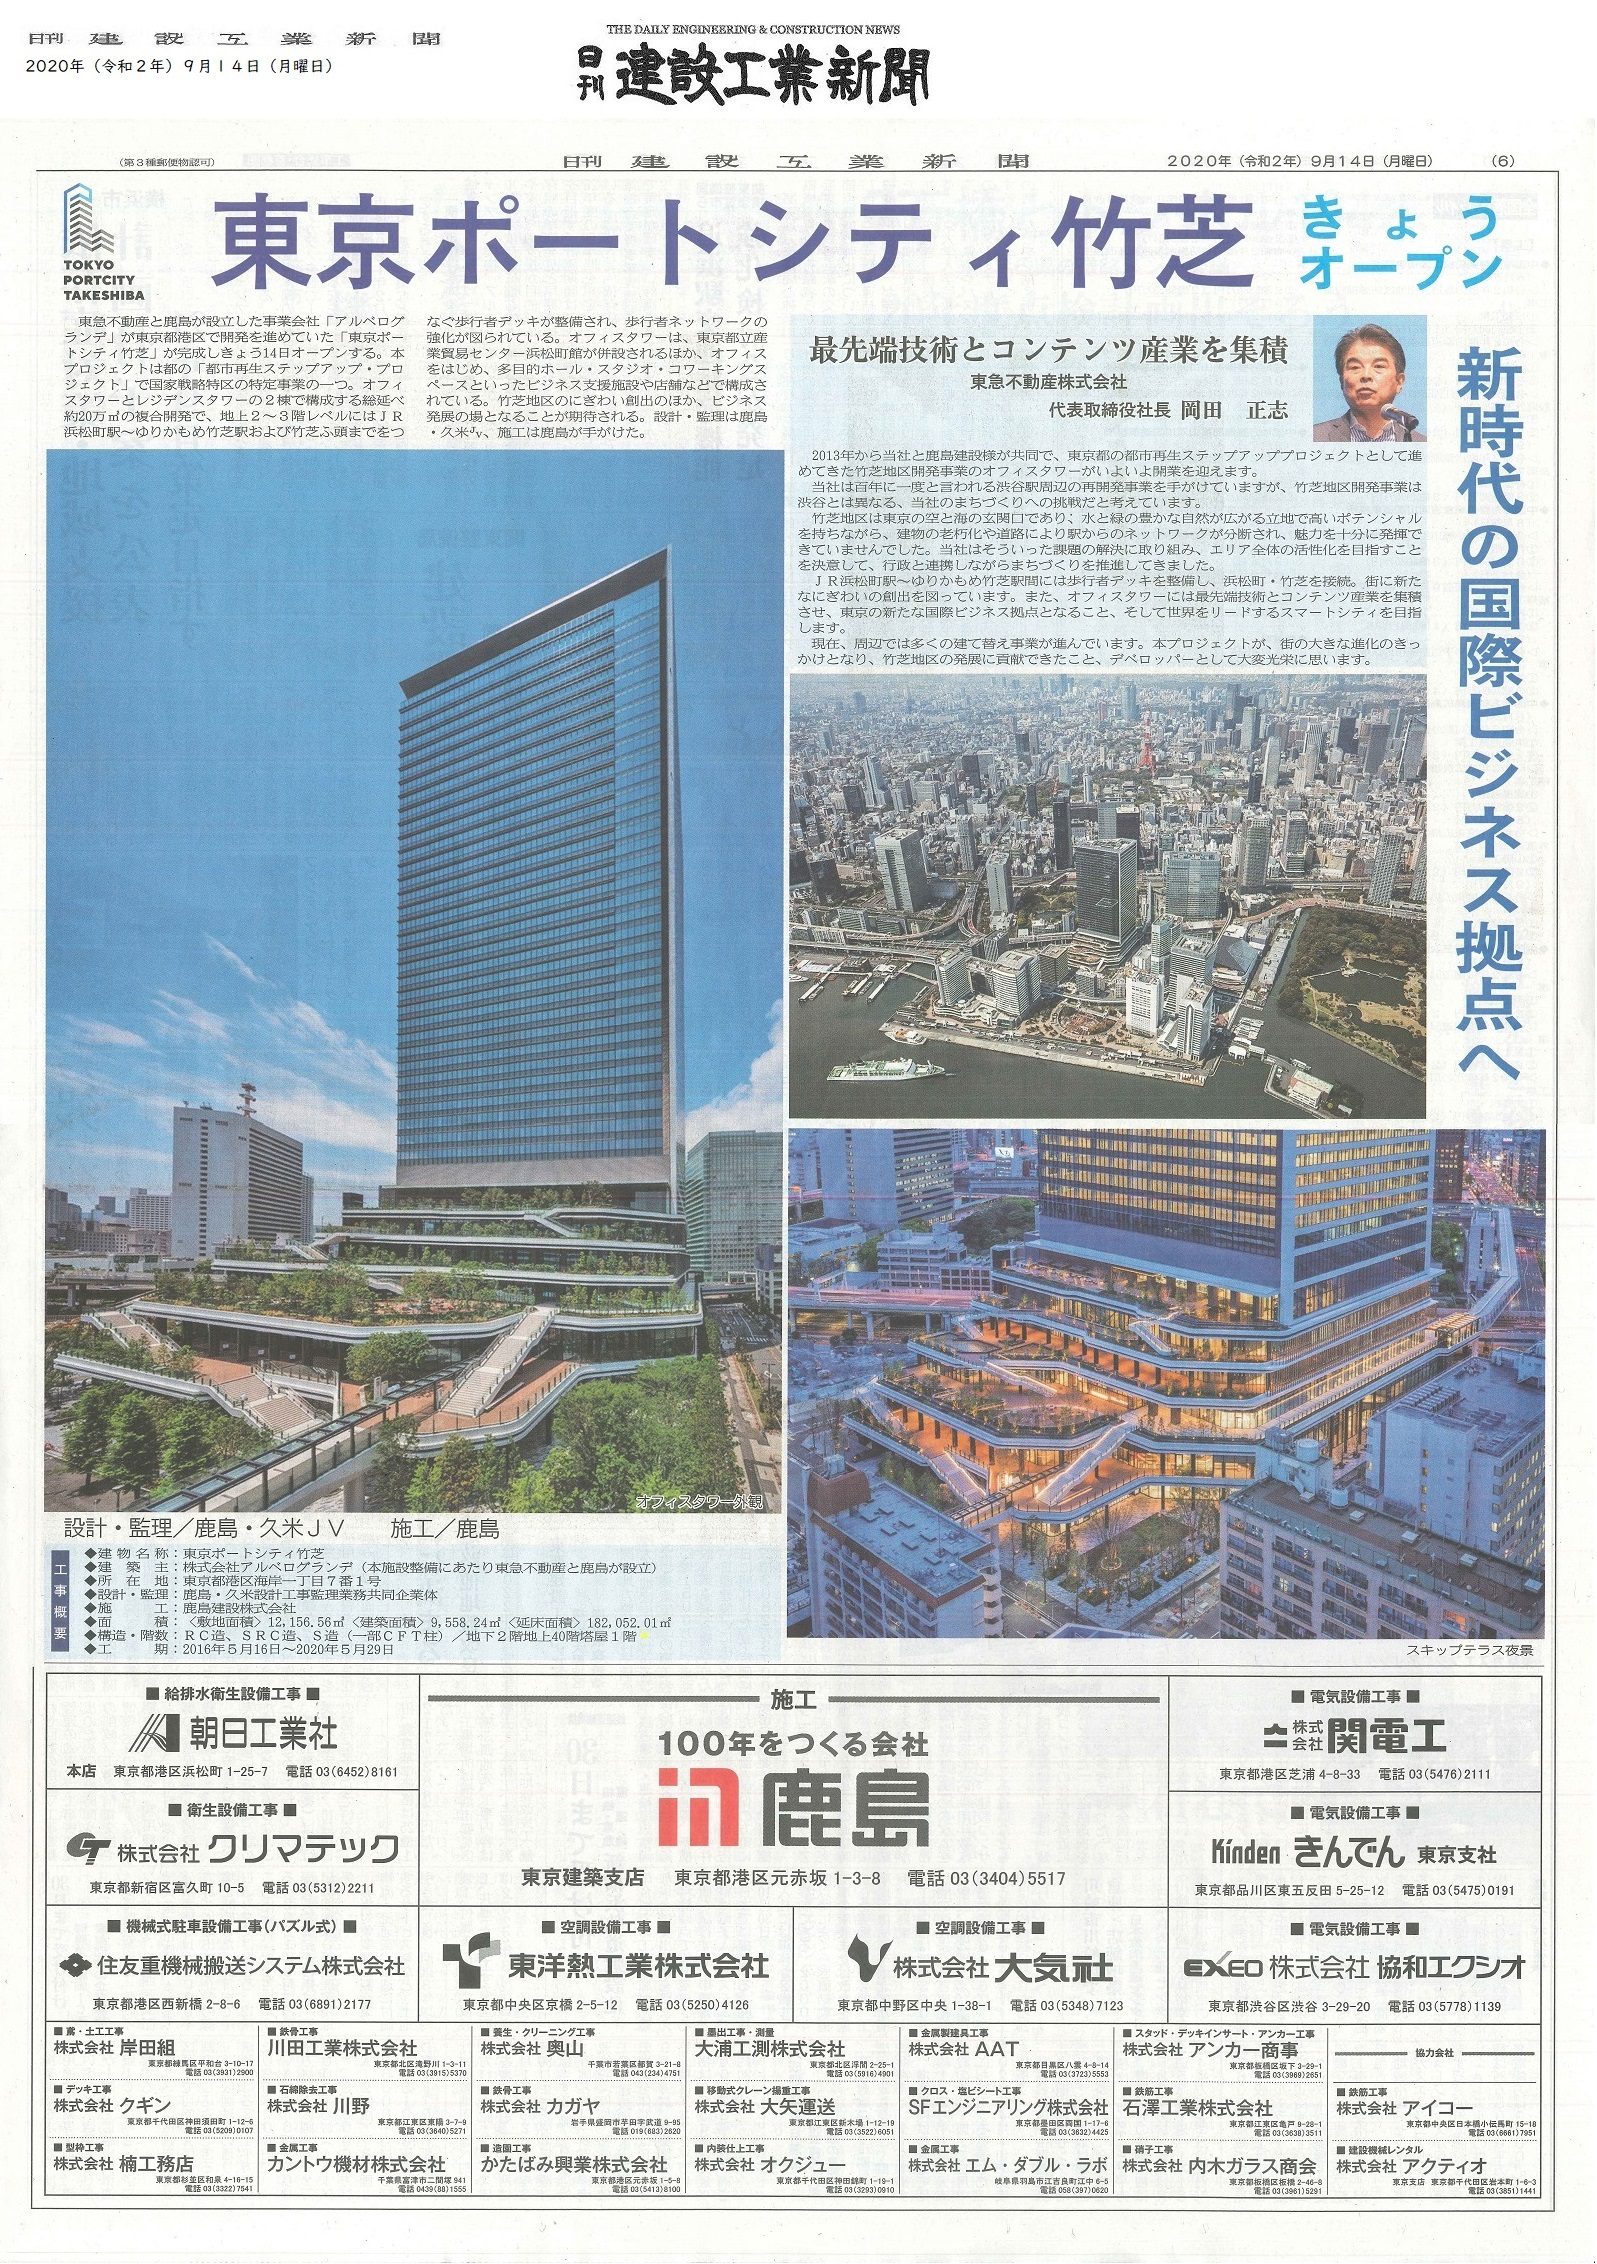 https://www.p-sato.co.jp/wp-content/uploads/2020/09/【日刊建設工業新聞】東京ポートシティ竹芝6面